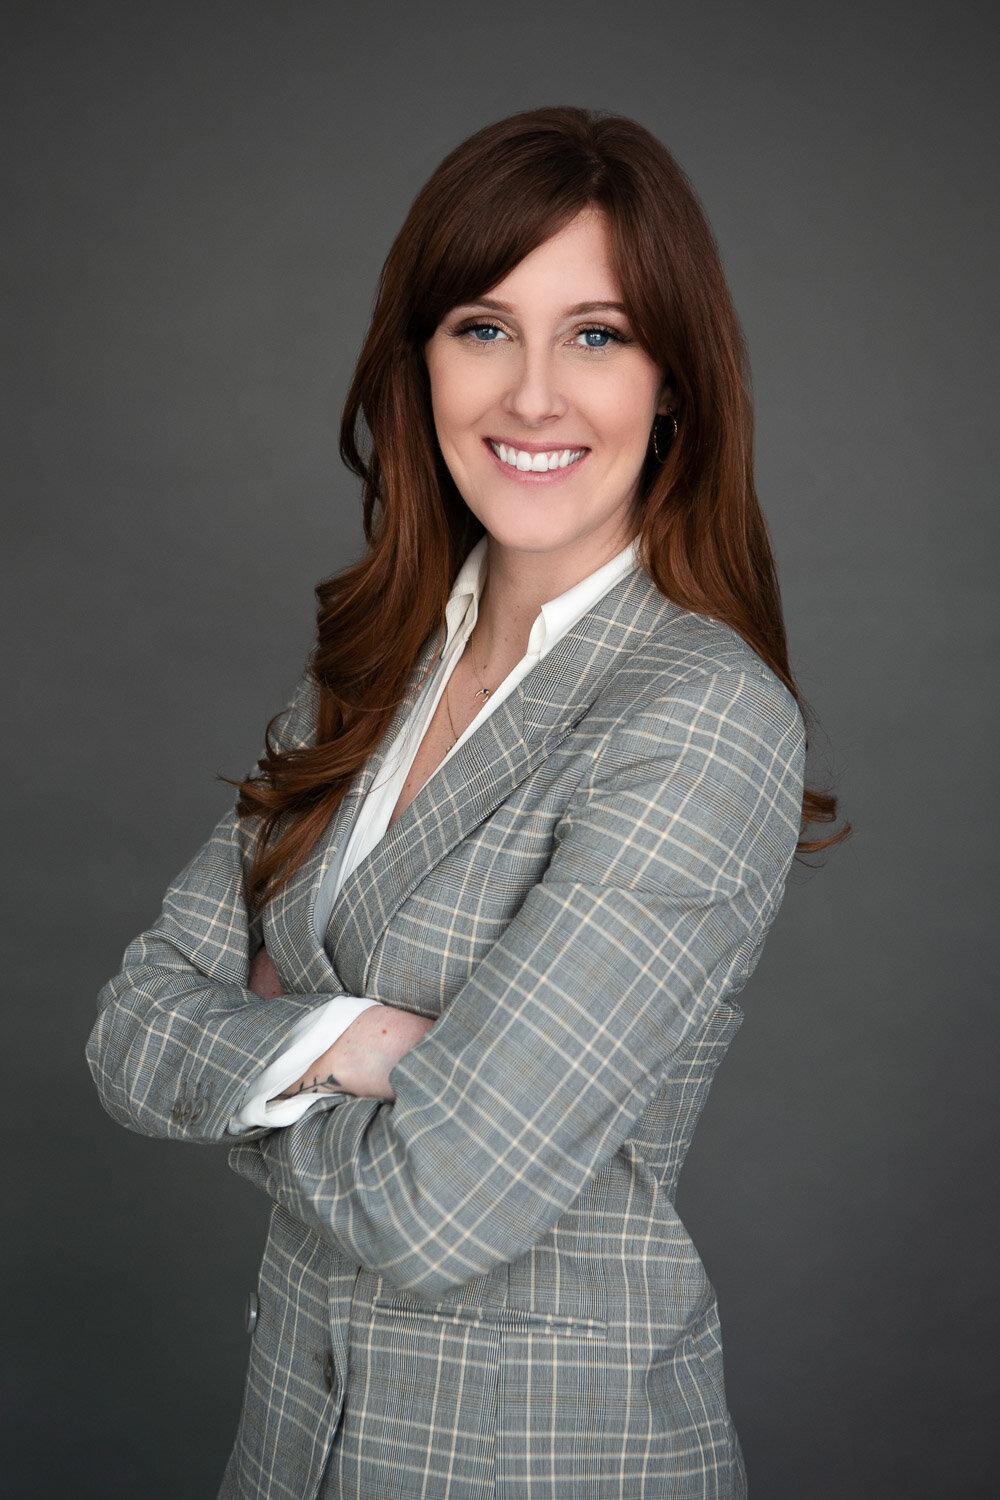 Business headshot of woman crossing her arms in blazer